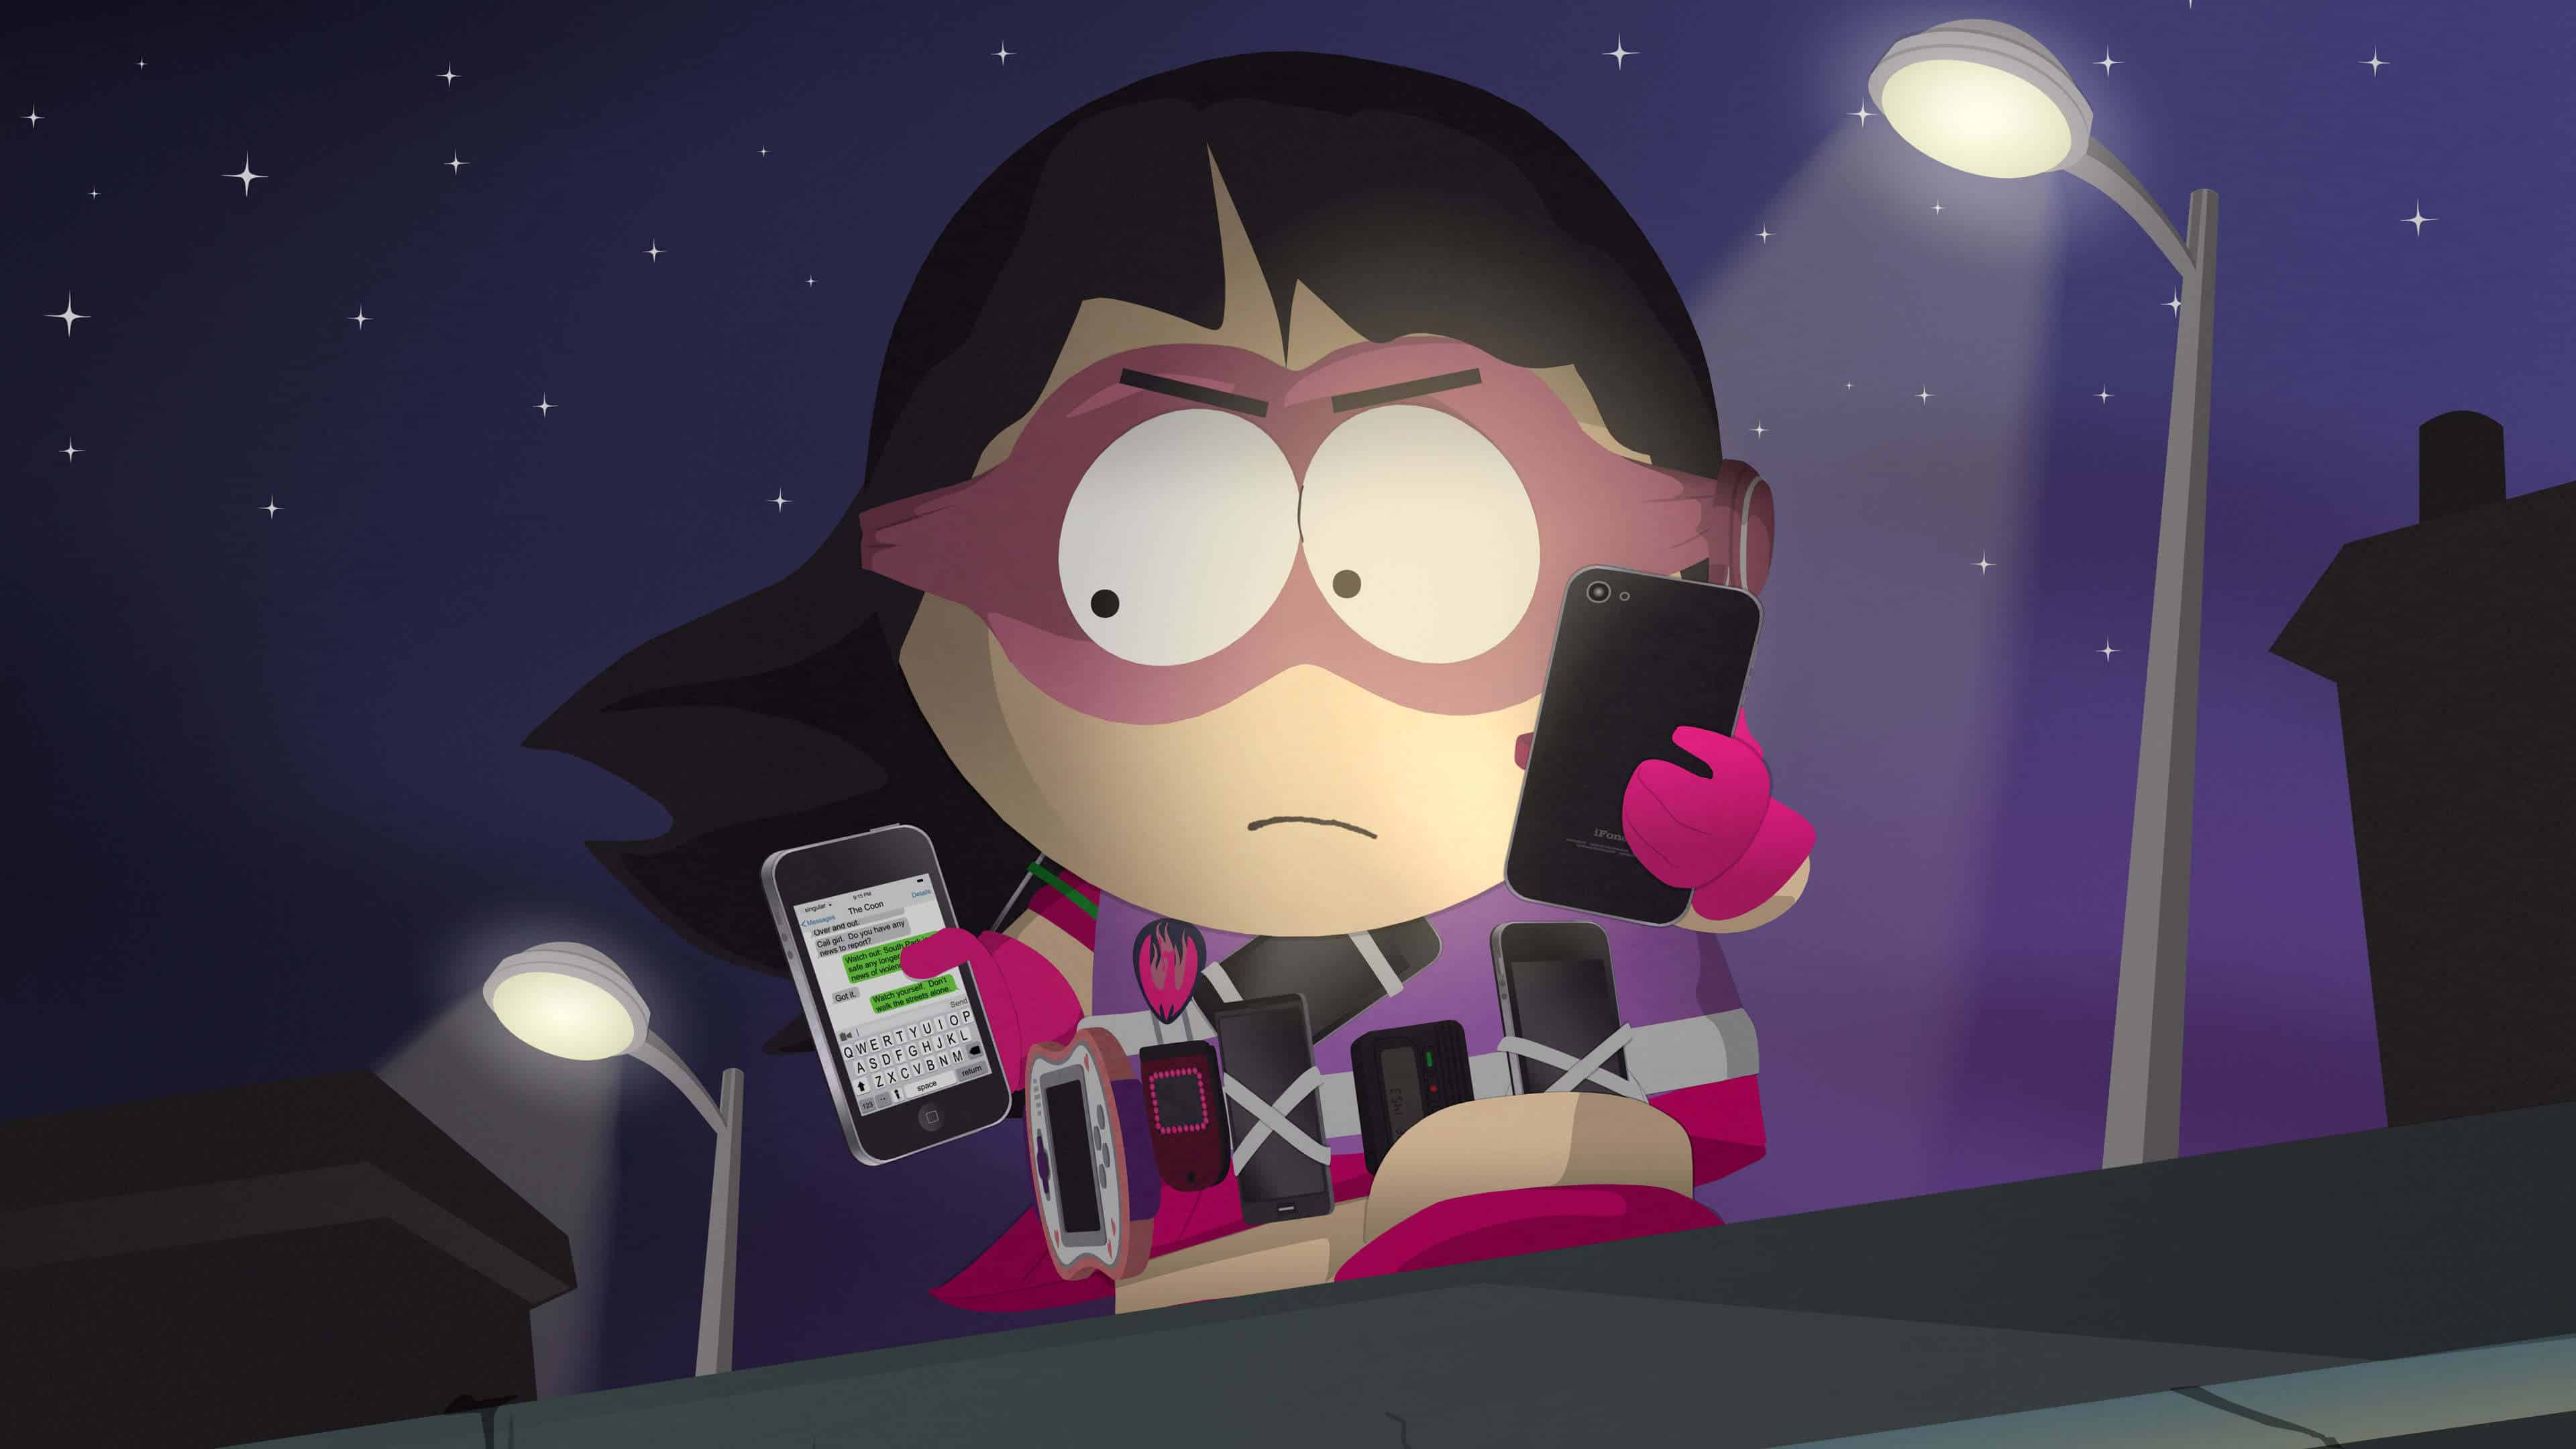 South Park Fractured But Whole Call Girl UHD 4K Wallpaper Pixelz 3840x2160